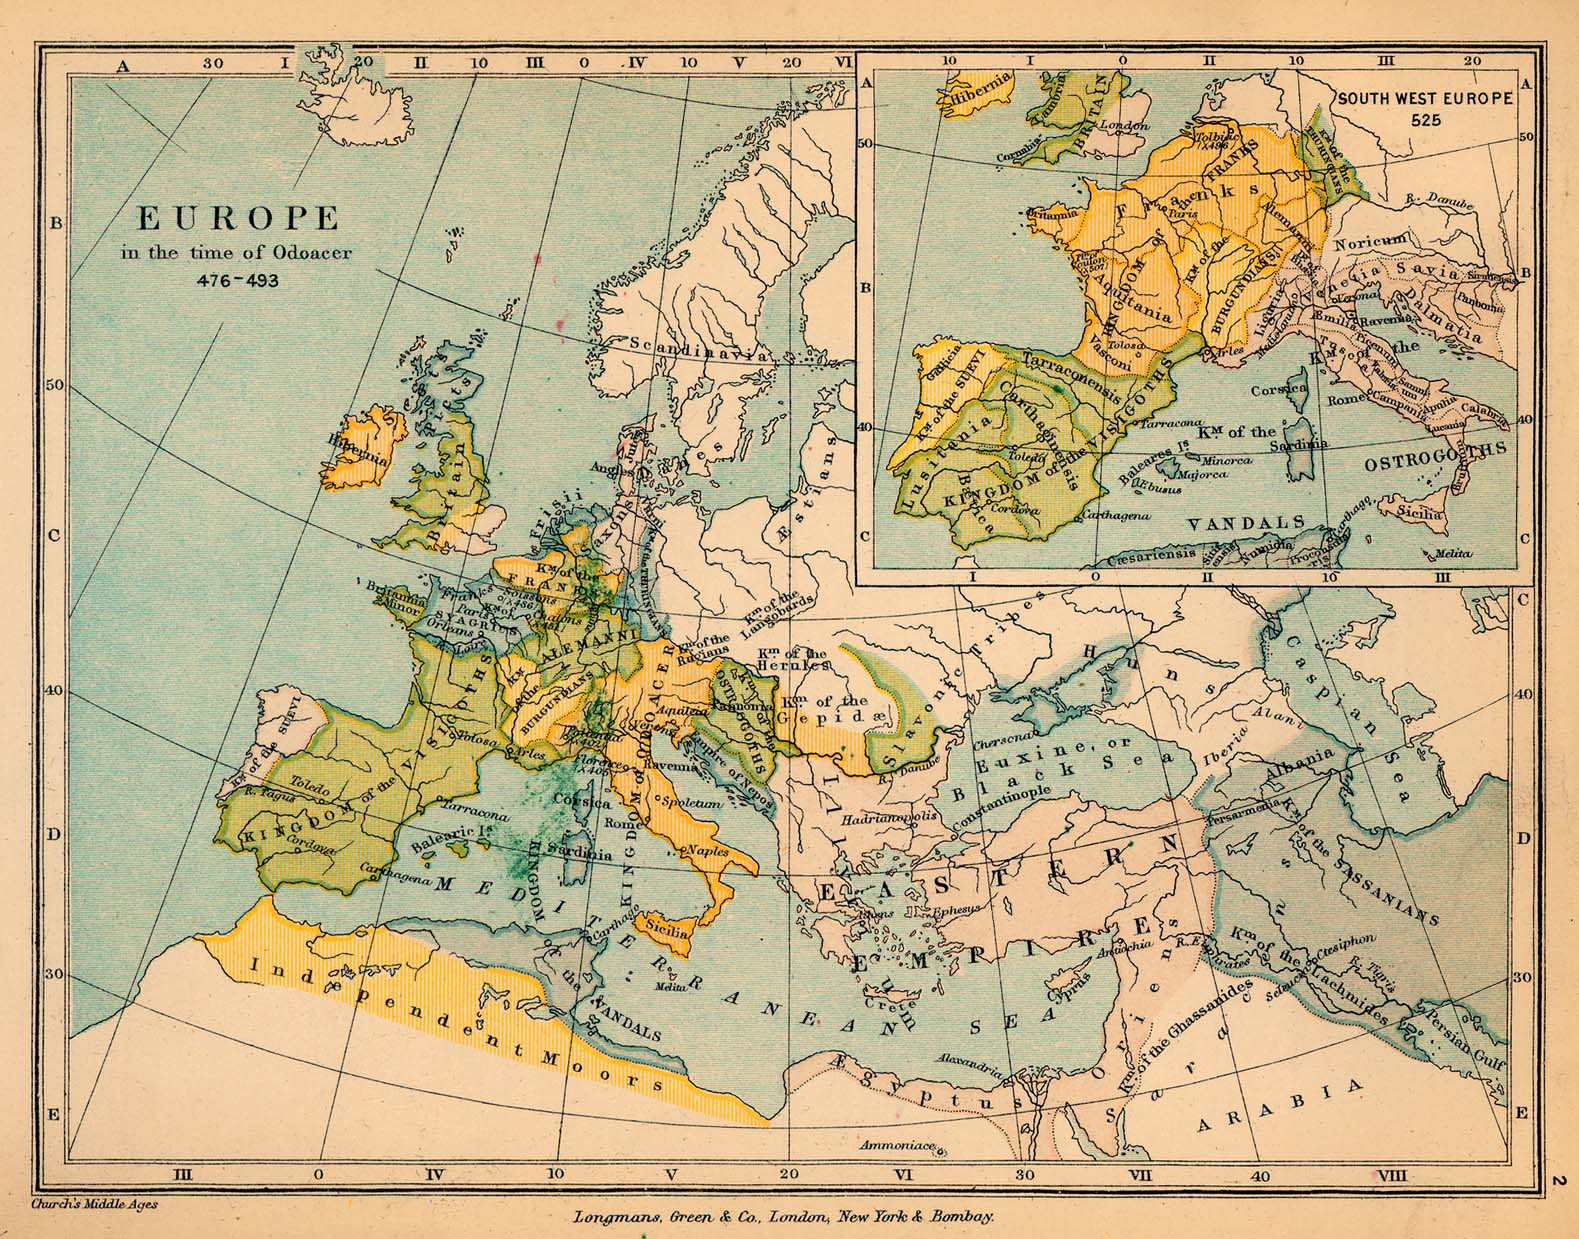 Public schools historical atlas by c colbeck perry castaeda map map 1 europe in the time of odoacer gumiabroncs Gallery